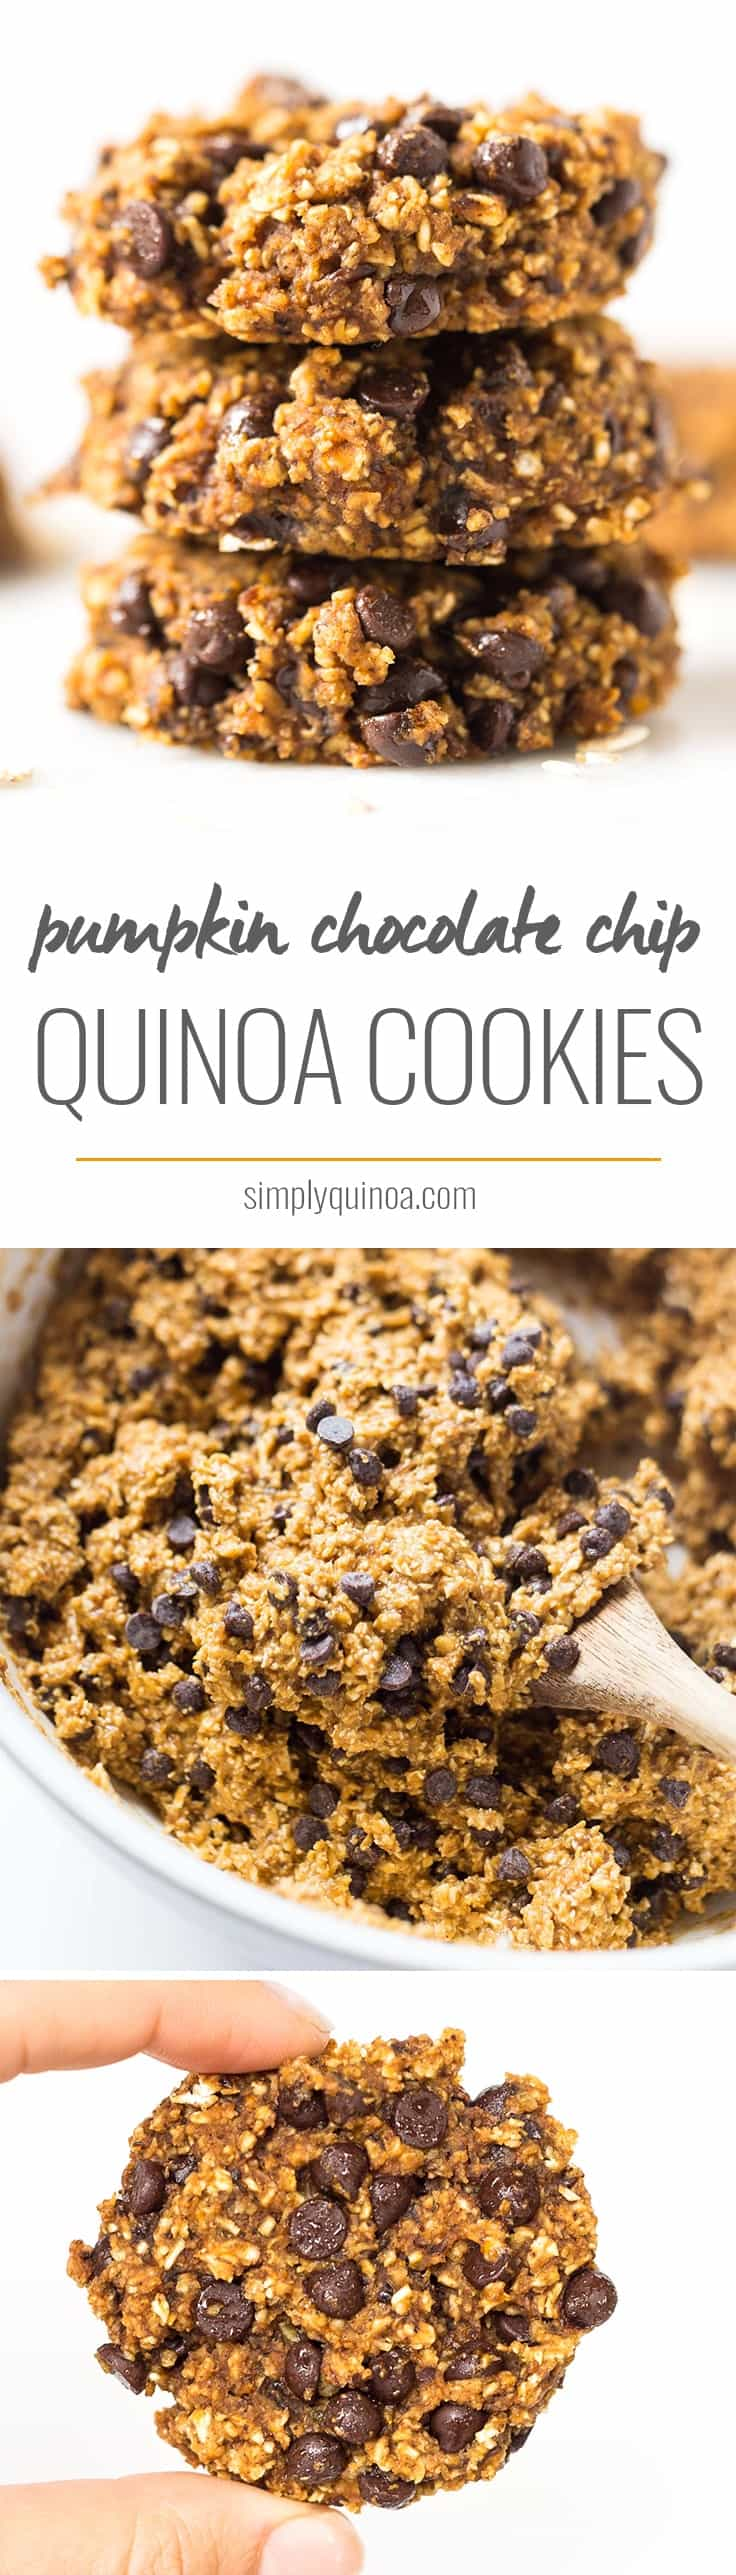 Pumpkin Chocolate Chip Cookies >> moist, tender, chewy and SUPER healthy!! NO butter, oil, gluten, dairy, eggs OR refined sugar!